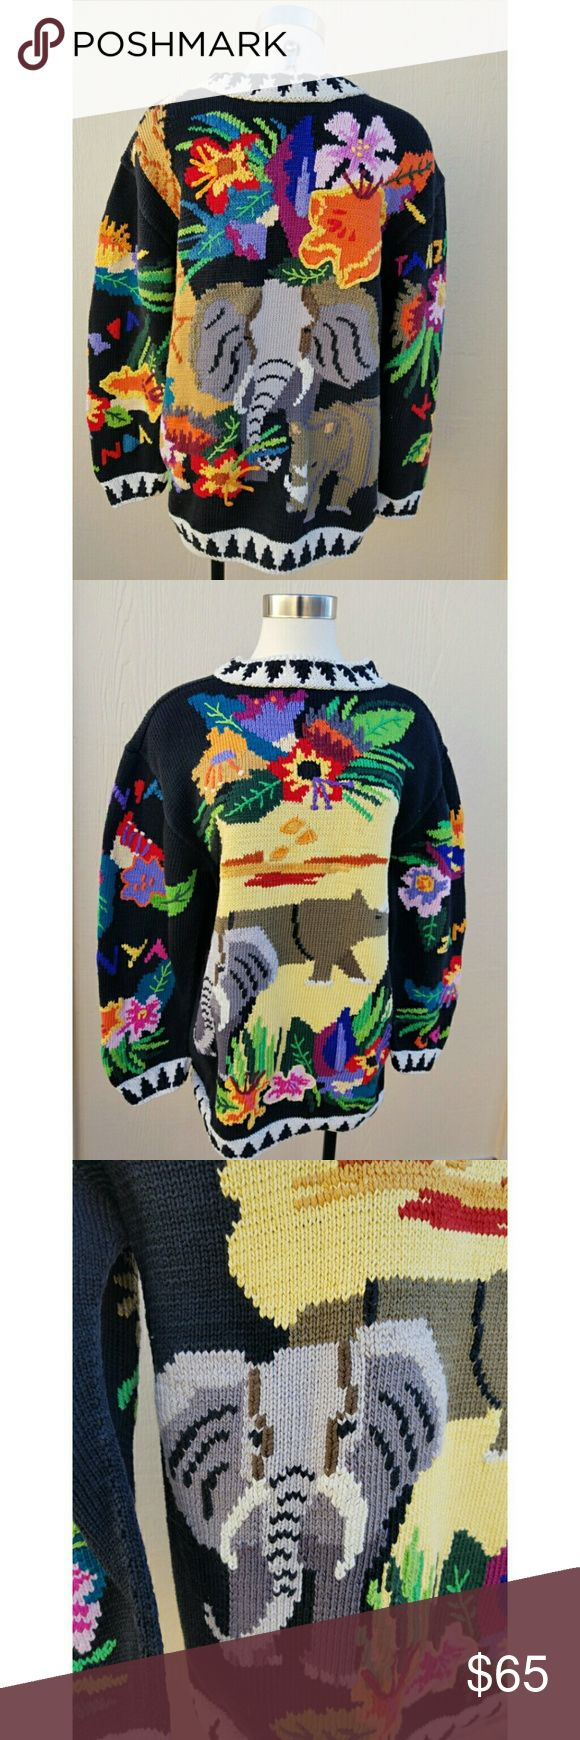 AMAZING VINTAGE African Jungle Safari Sweater! Berek Size L Amazing Heavy Knit  Tropical Jungle Safari Features Florals, Rhino, Giraffe, Elephants Large Elephant on Back Arms read: Tanzania, Kenya, Zambia, Uganda Excellent Condition Vintage Sweaters